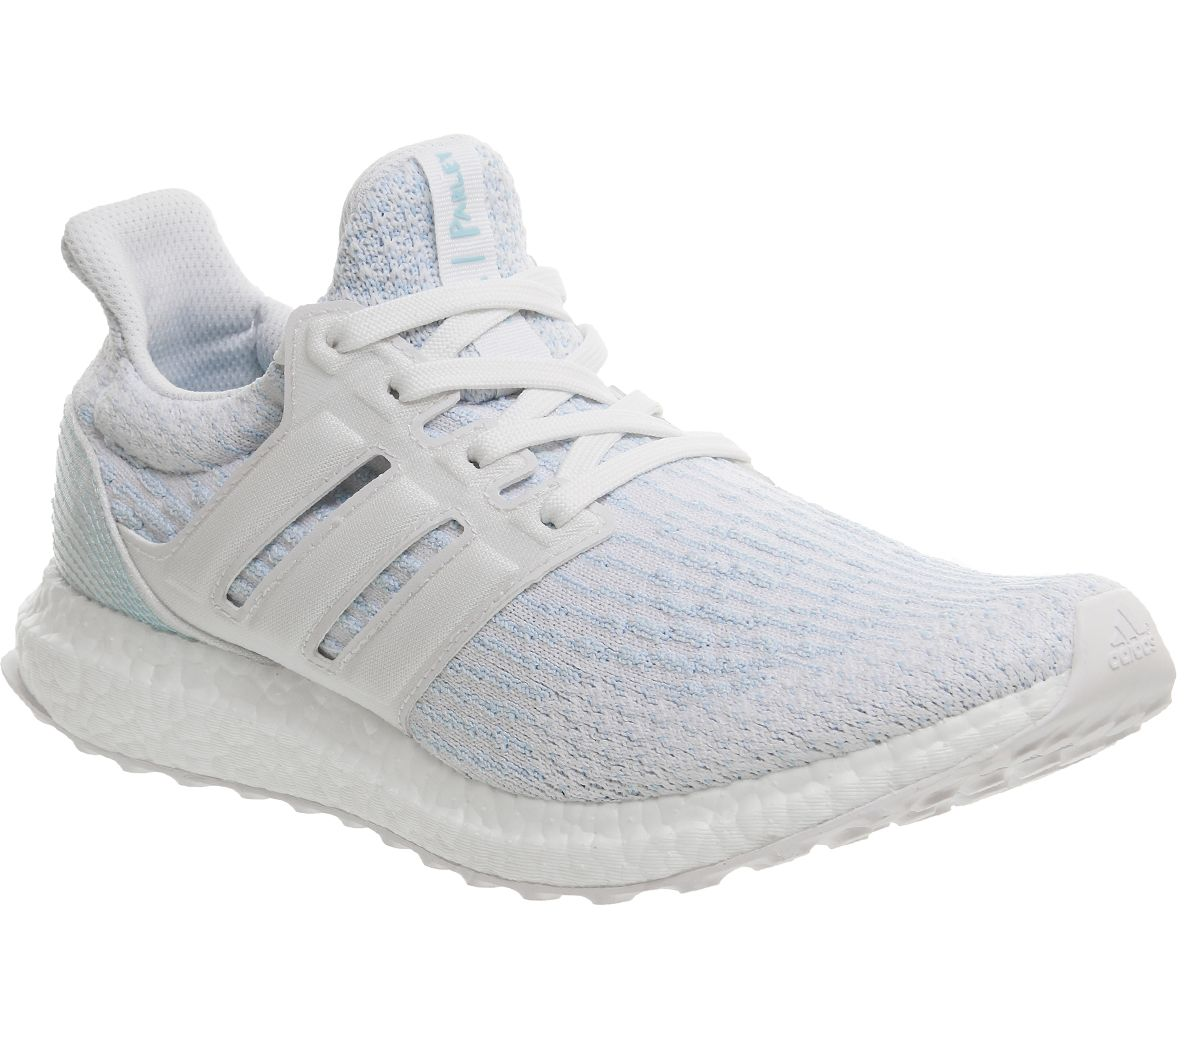 e16beb130 adidas Ultraboost Ultra Boost Trainers White Icey Blue Parley ...